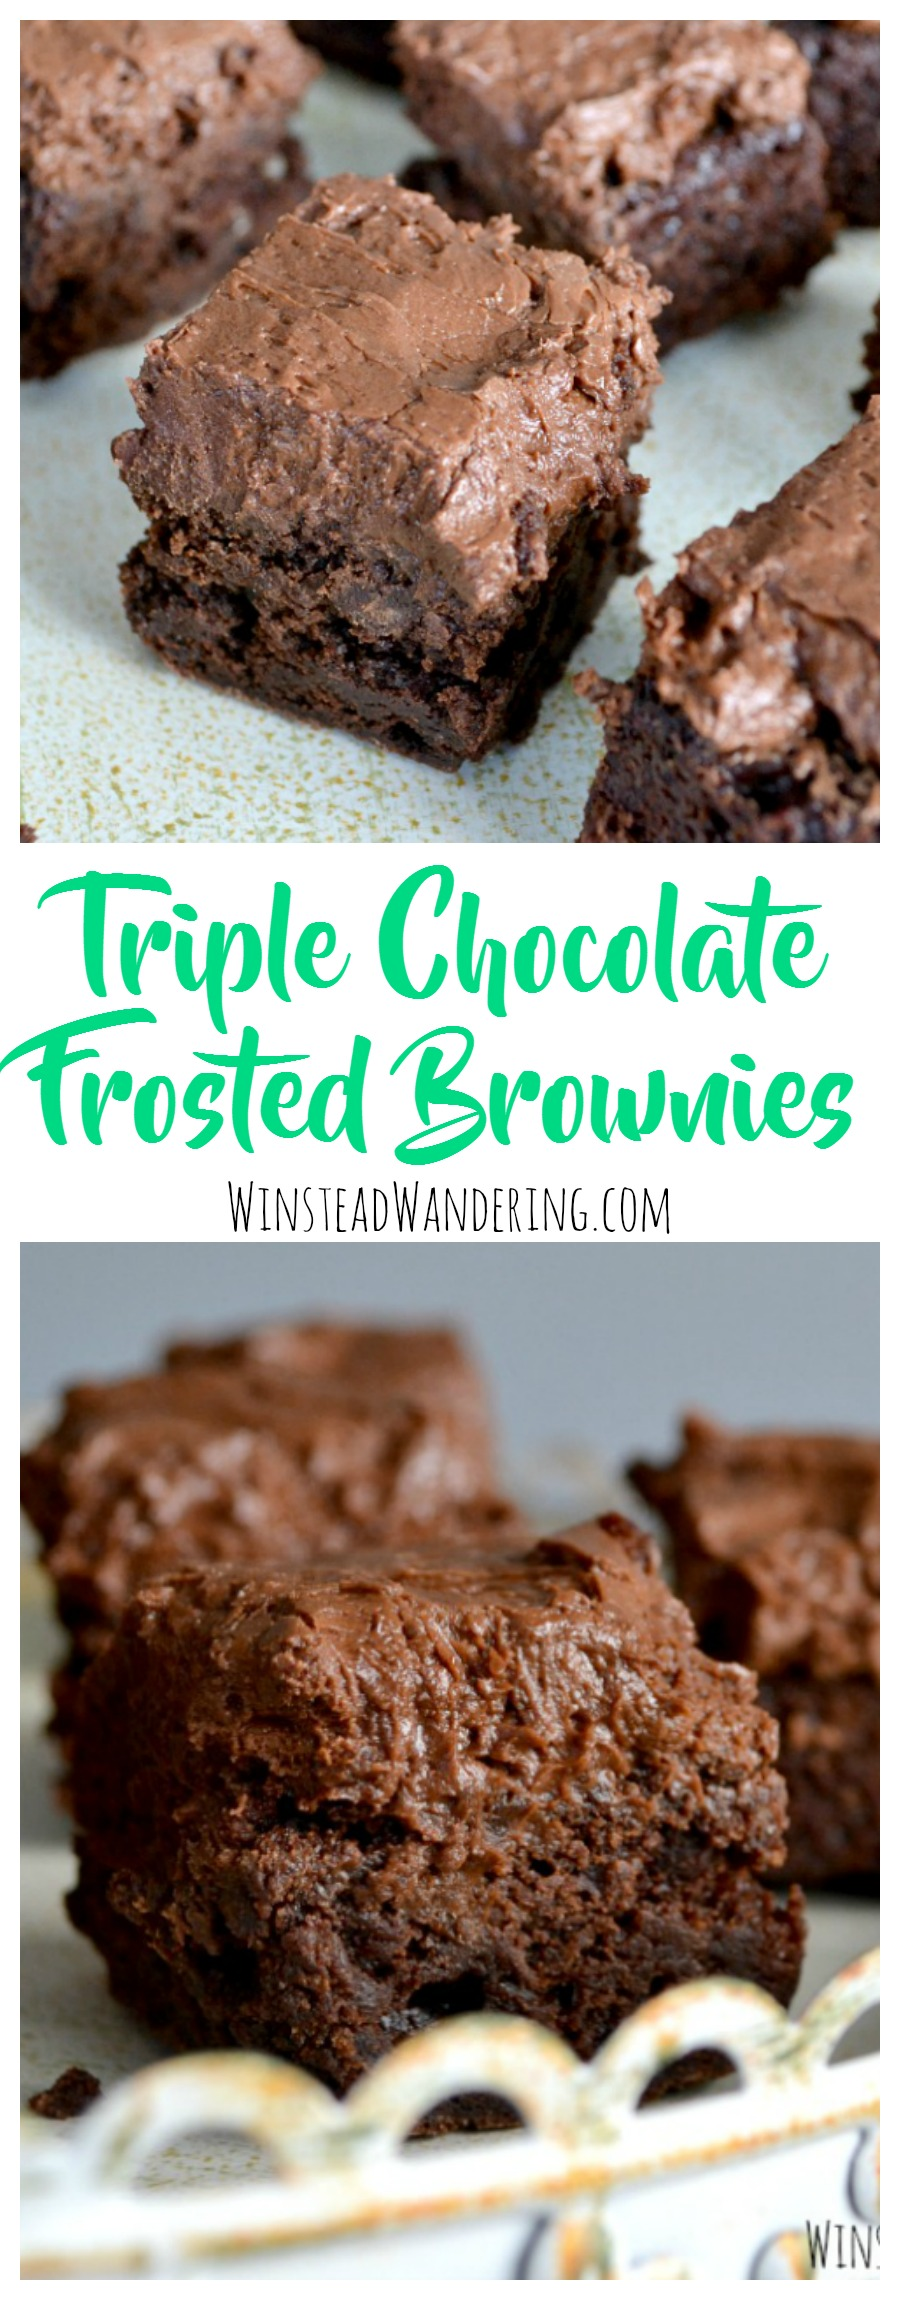 A rich brownie recipe is packed with chocolate chips and smothered in a fluffy homemade buttercream to make mouthwatering triple chocolate frosted brownies.